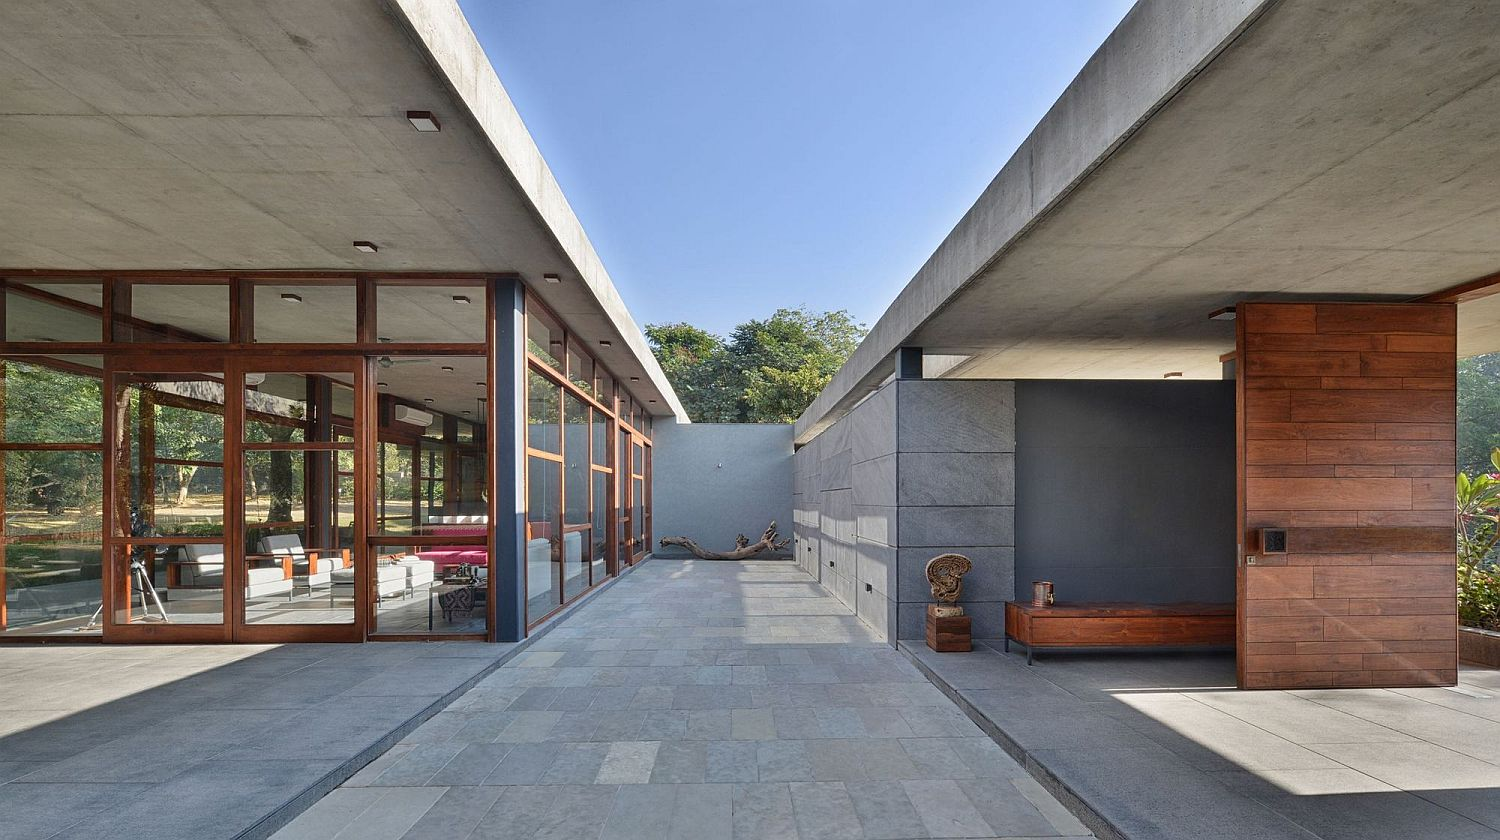 Open, Pavilion style House by the Trees in India